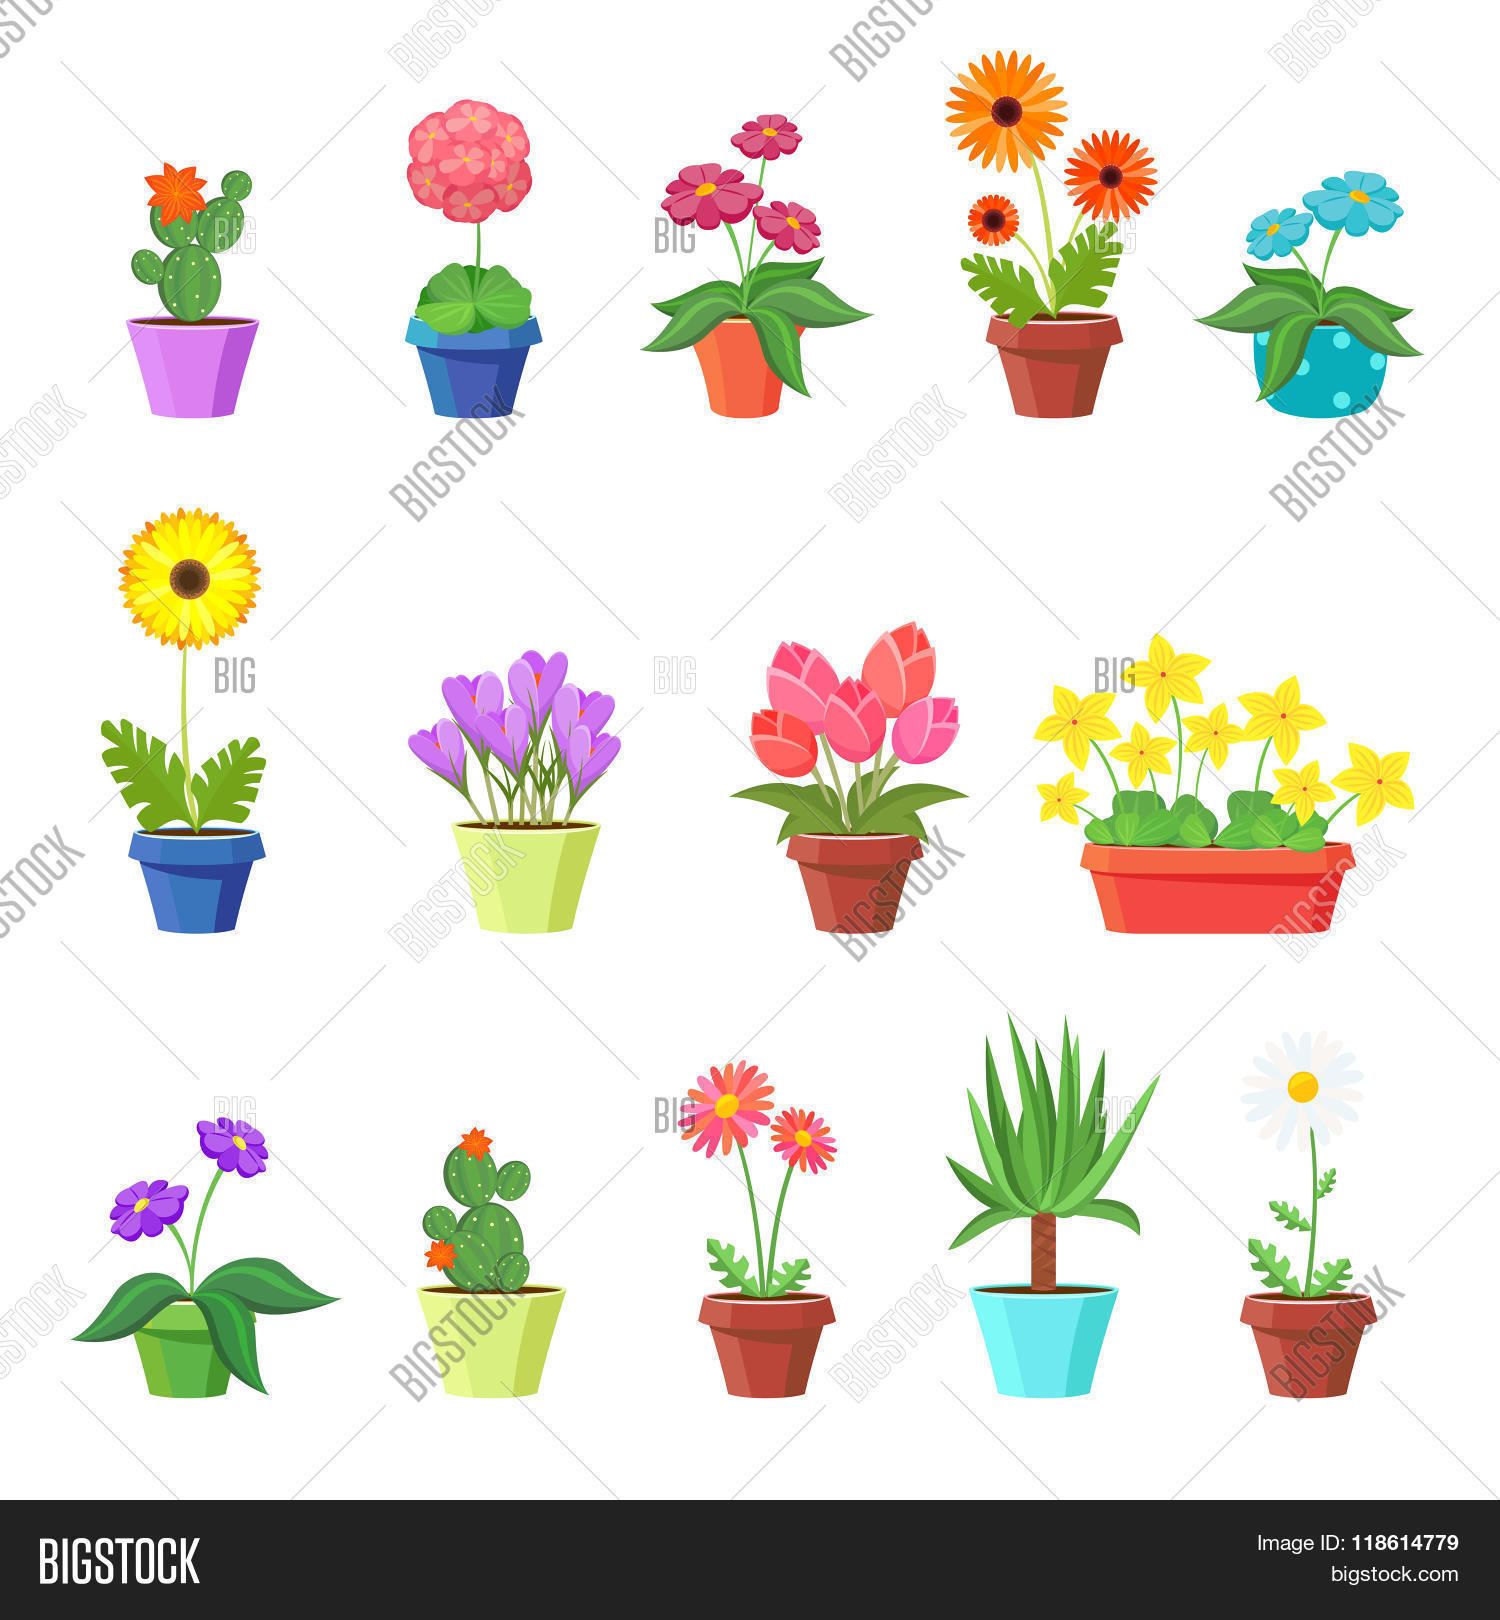 Cute Spring Flowers Vector Photo Free Trial Bigstock